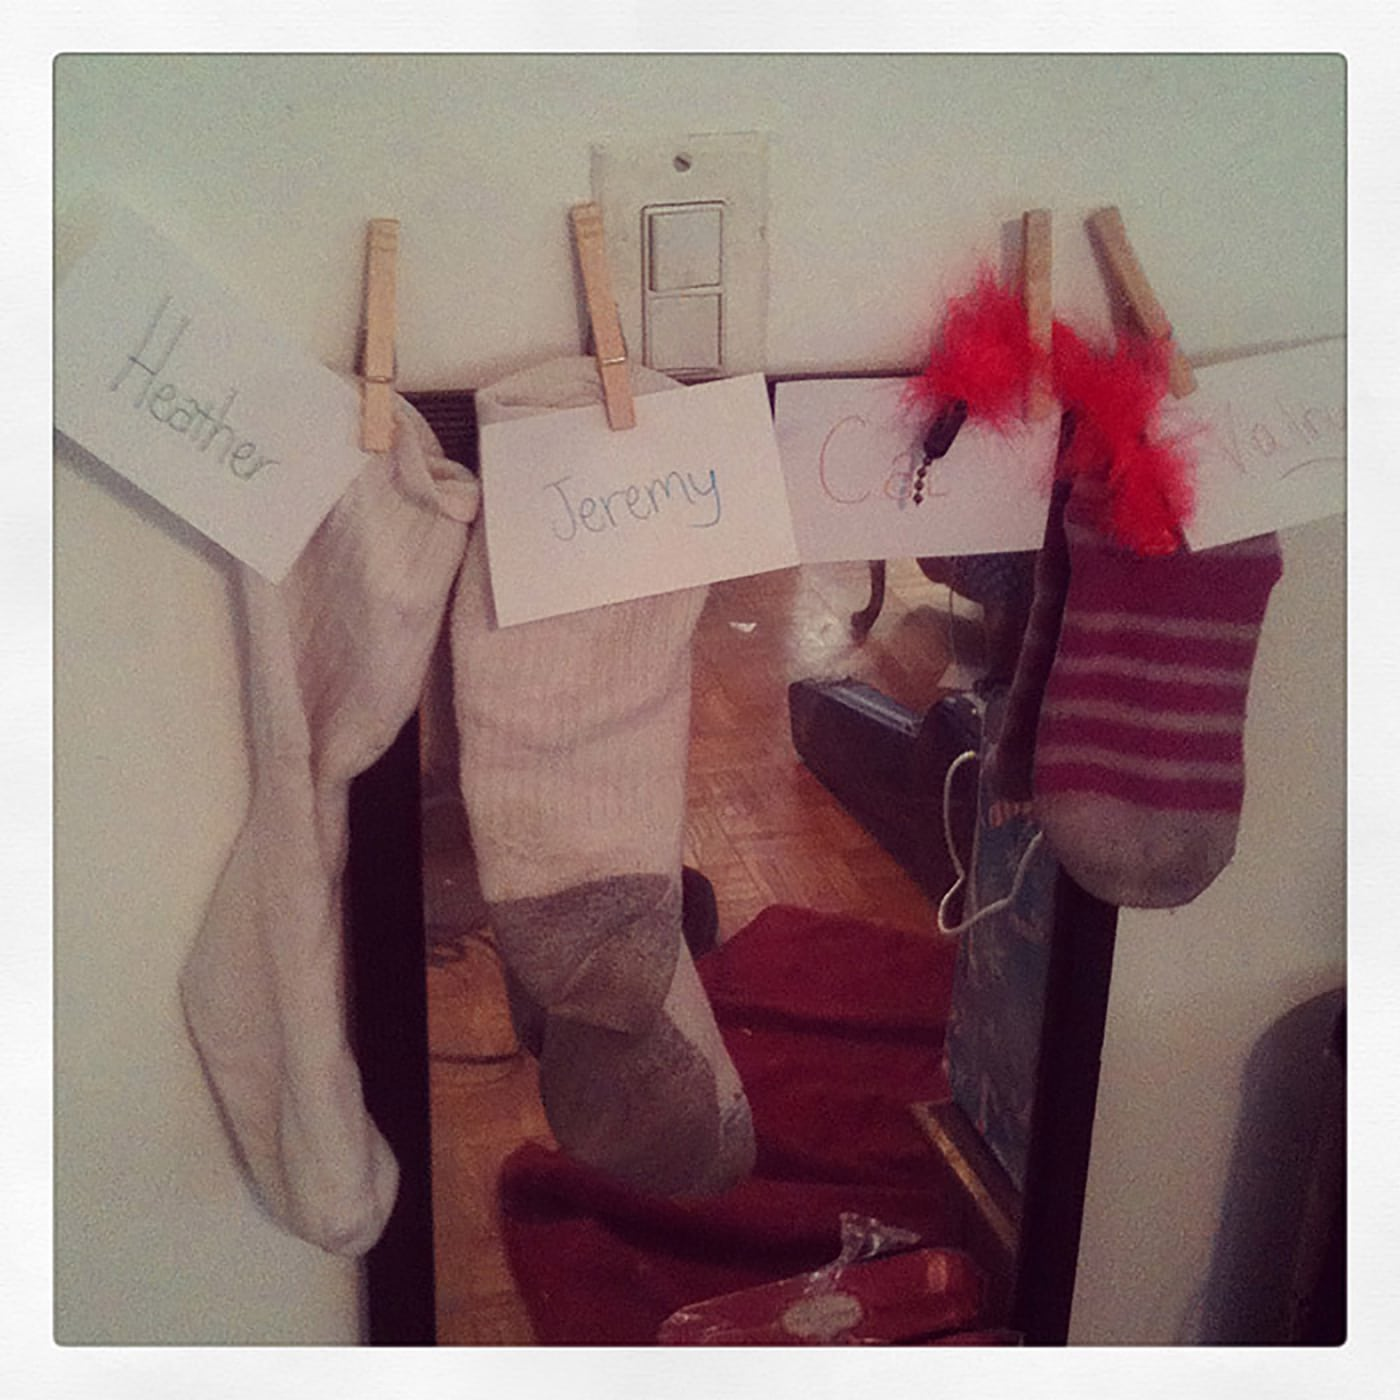 All our mismatched stockings were hung by the mirror with care...